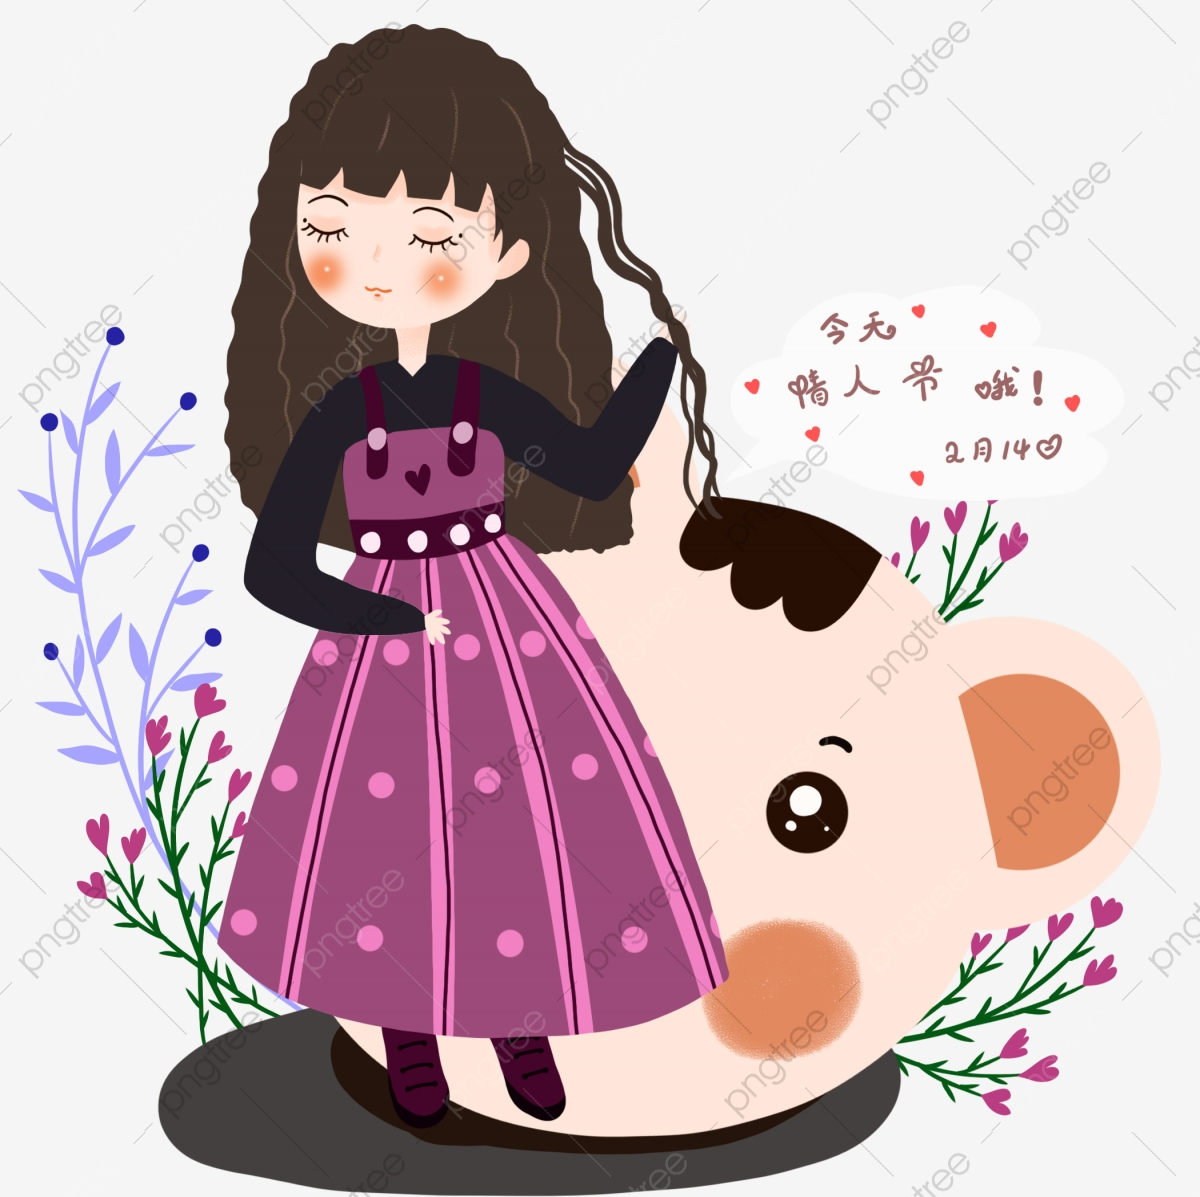 Cute Cat Pretty Girl Pink Flowers Beautiful Flowers Cartoon Illustration Hand Drawn Illustration Valentines Day Illustration Png Transparent Clipart Image And Psd File For Free Download